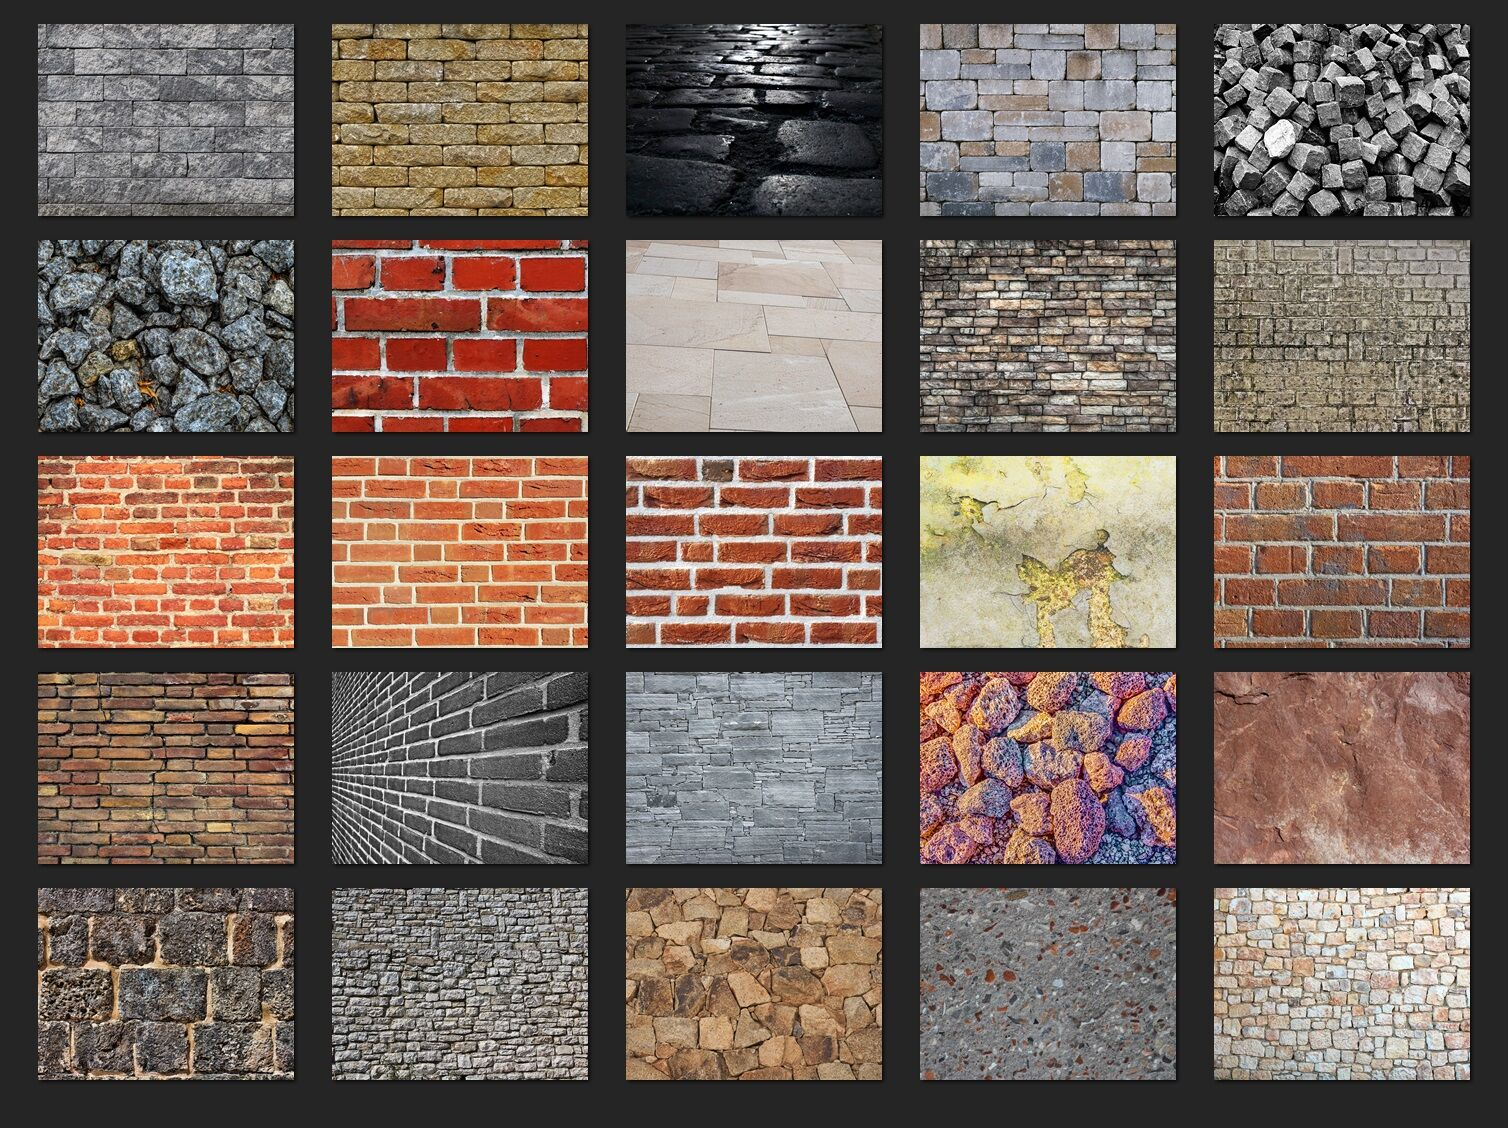 200 High Quality Stone Rock Wall Digital Photoshop Overlays By